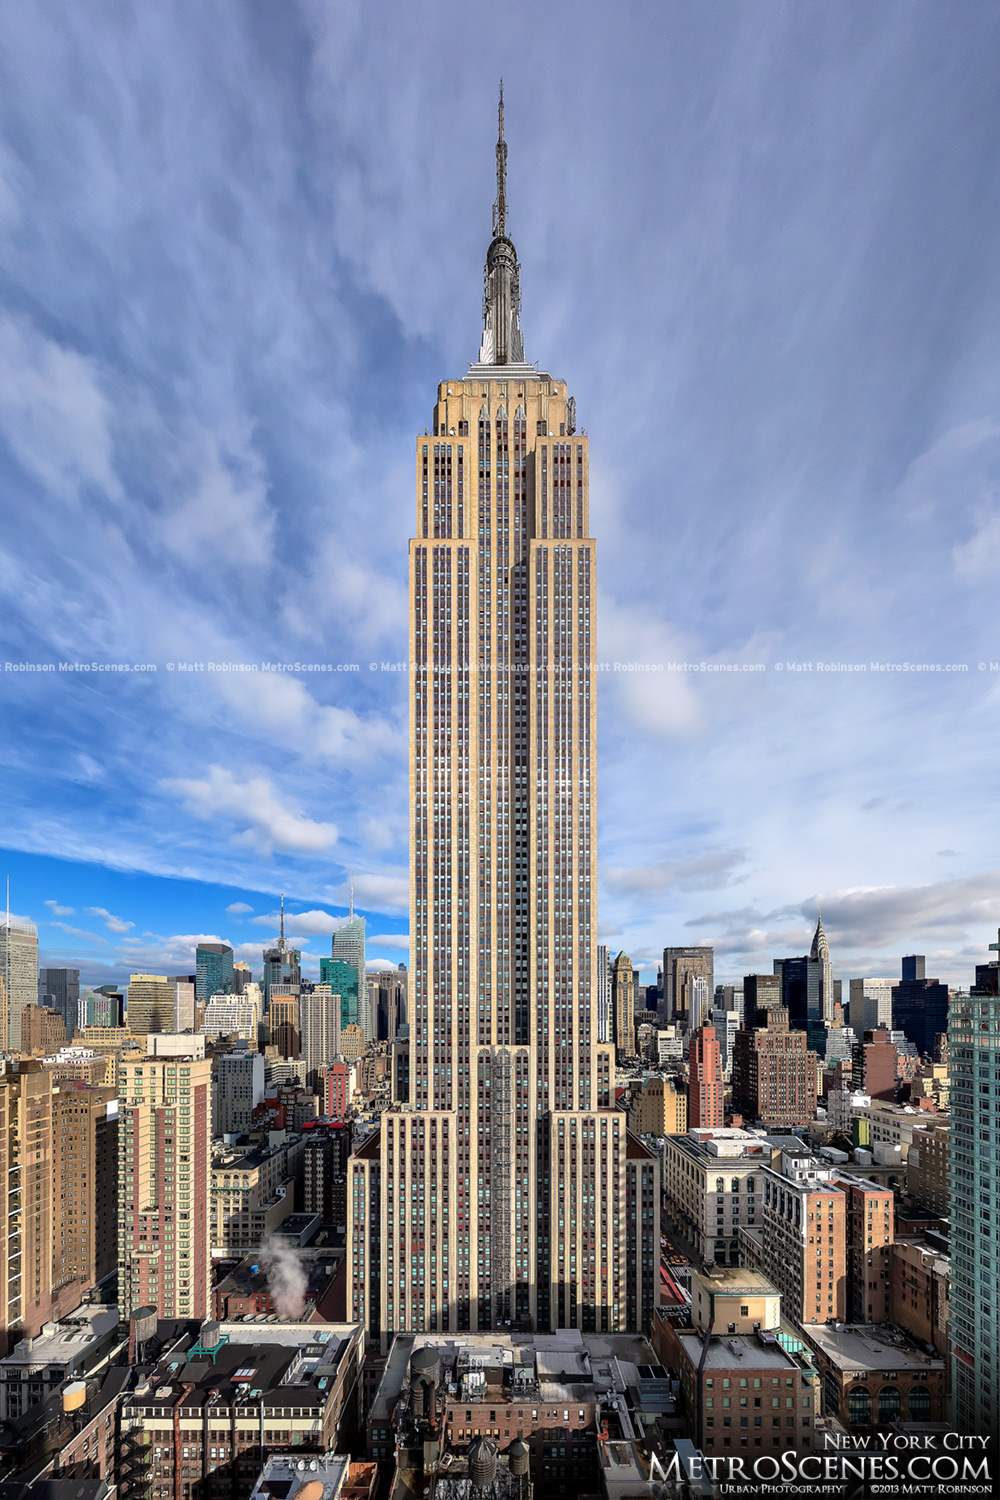 The Empire State Building Towers over Midtown Manhattan